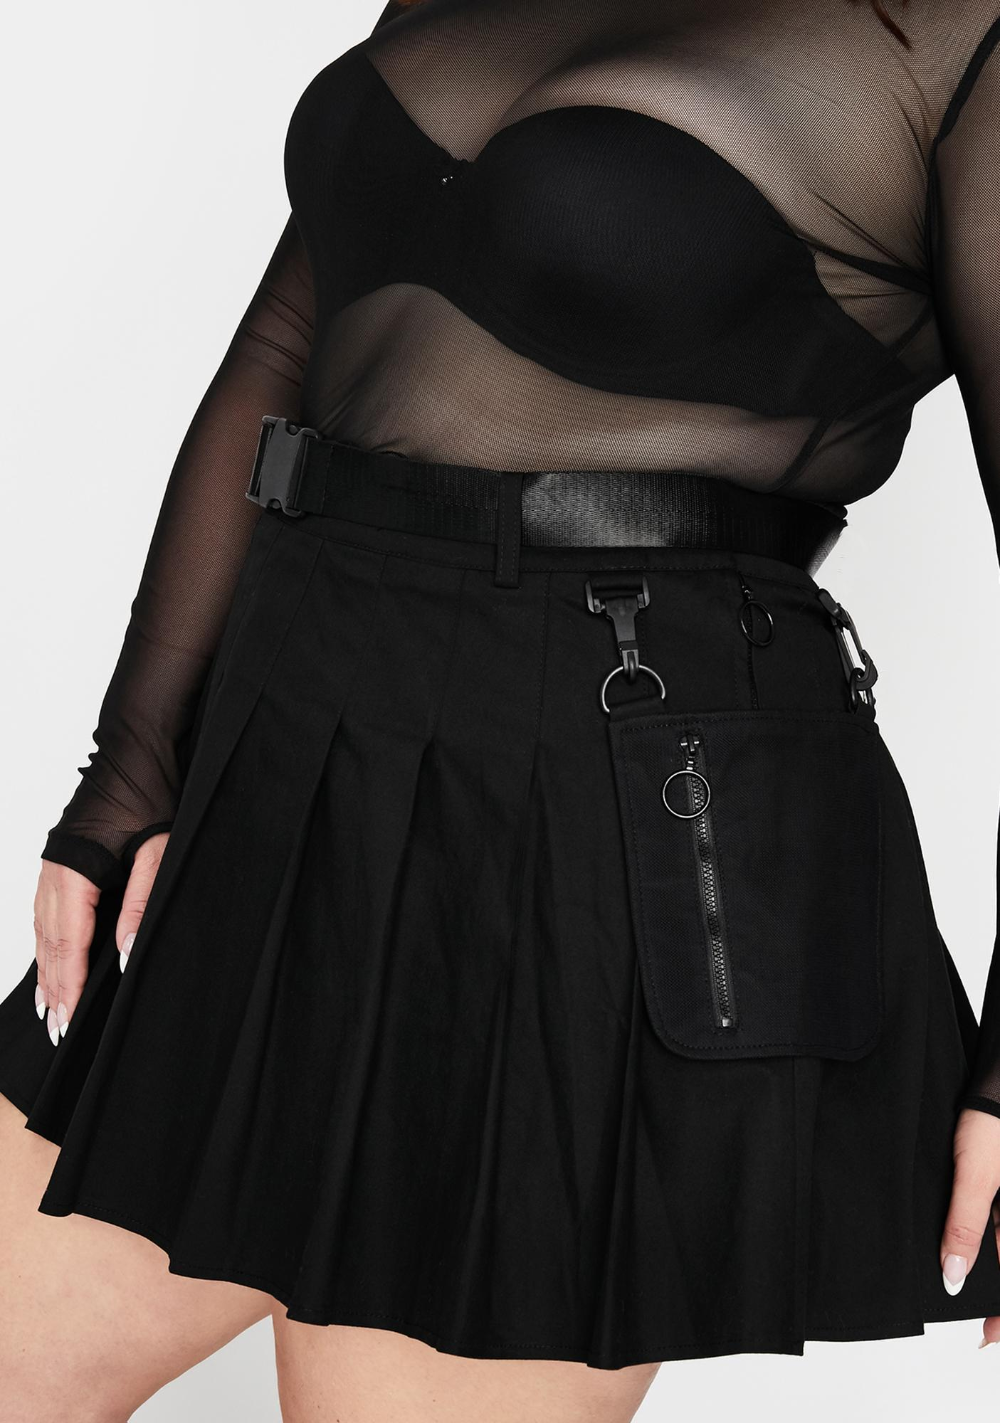 Devious It S High Security Utility Skirt Devious It S High Security Utility Skirt Plus Size Cur In 2020 Fashion Inspo Outfits Plus Size Mini Skirts Plus Size Grunge